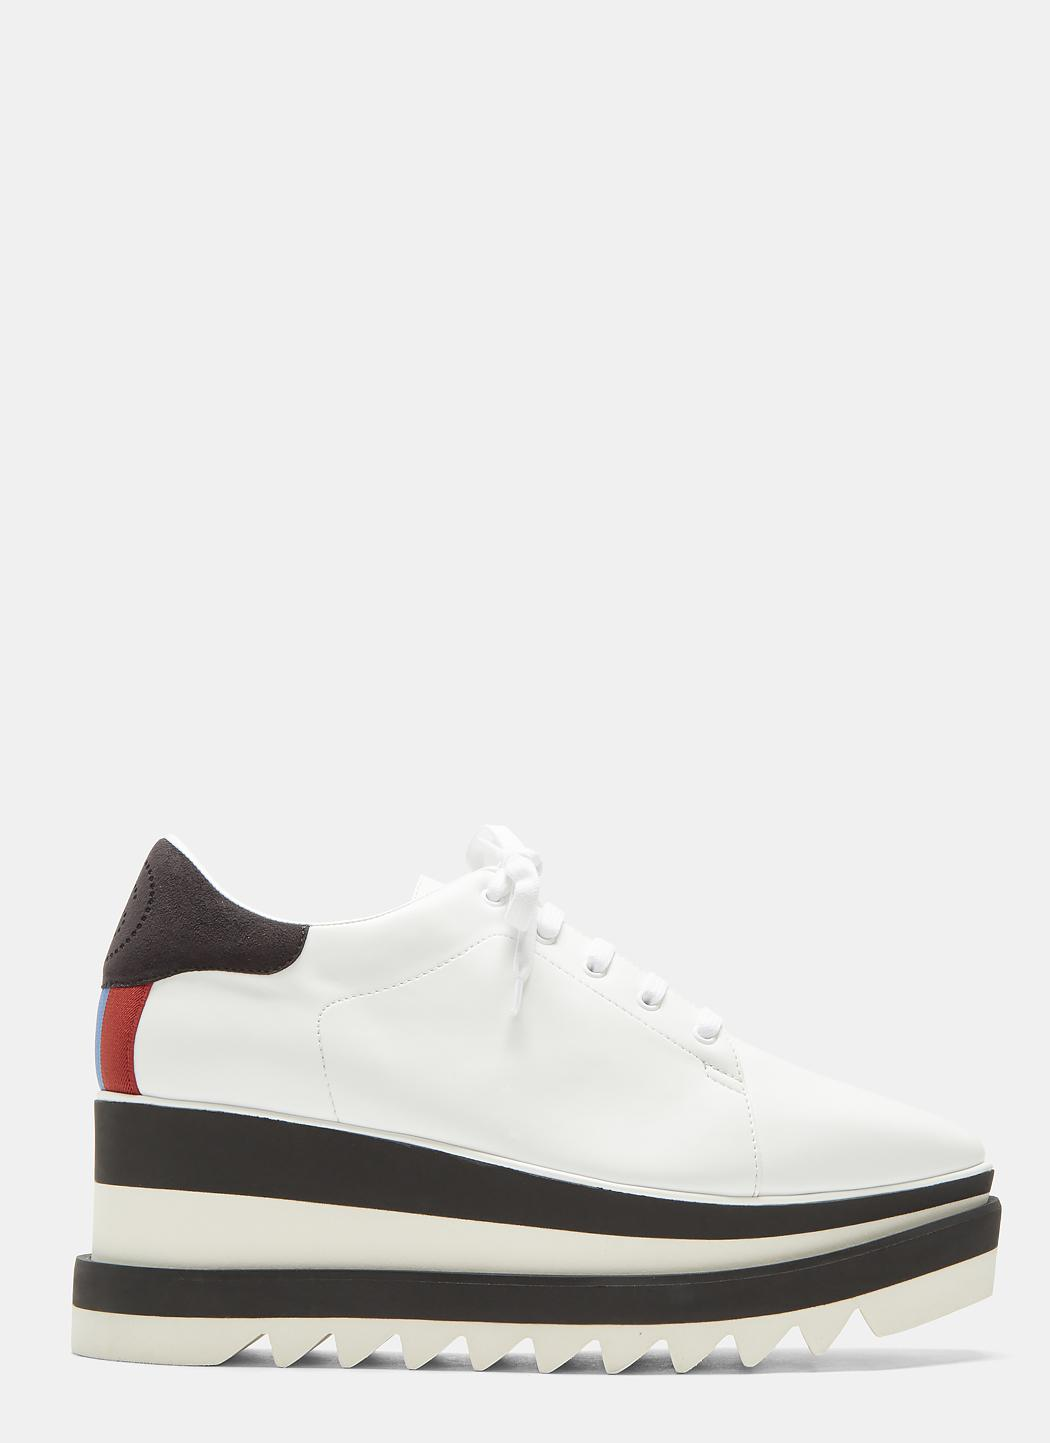 43d65bcf3eea Lyst - Stella Mccartney Elyse Platform Sneakers In White .